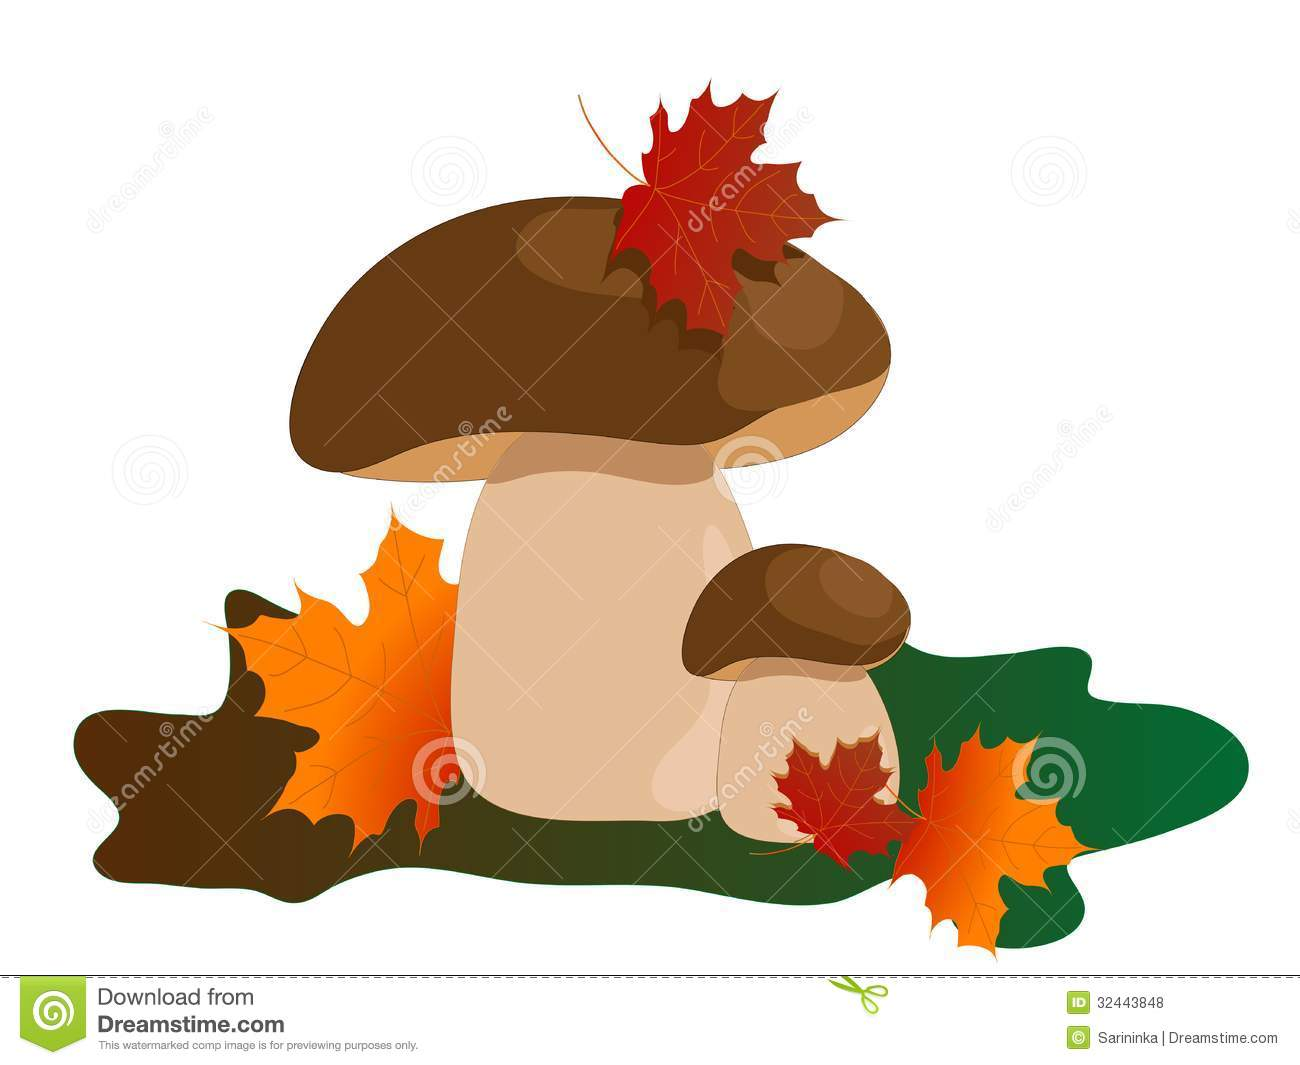 besides 640307 moreover Stock Illustration Collection Of Cartoon Mushrooms And together with Royalty Free Stock Photo Back To School Illustration Seamless Cartoon Pattern Background Image35729075 further Stock Photography Chilly Image15062952. on cartoon mushrooms